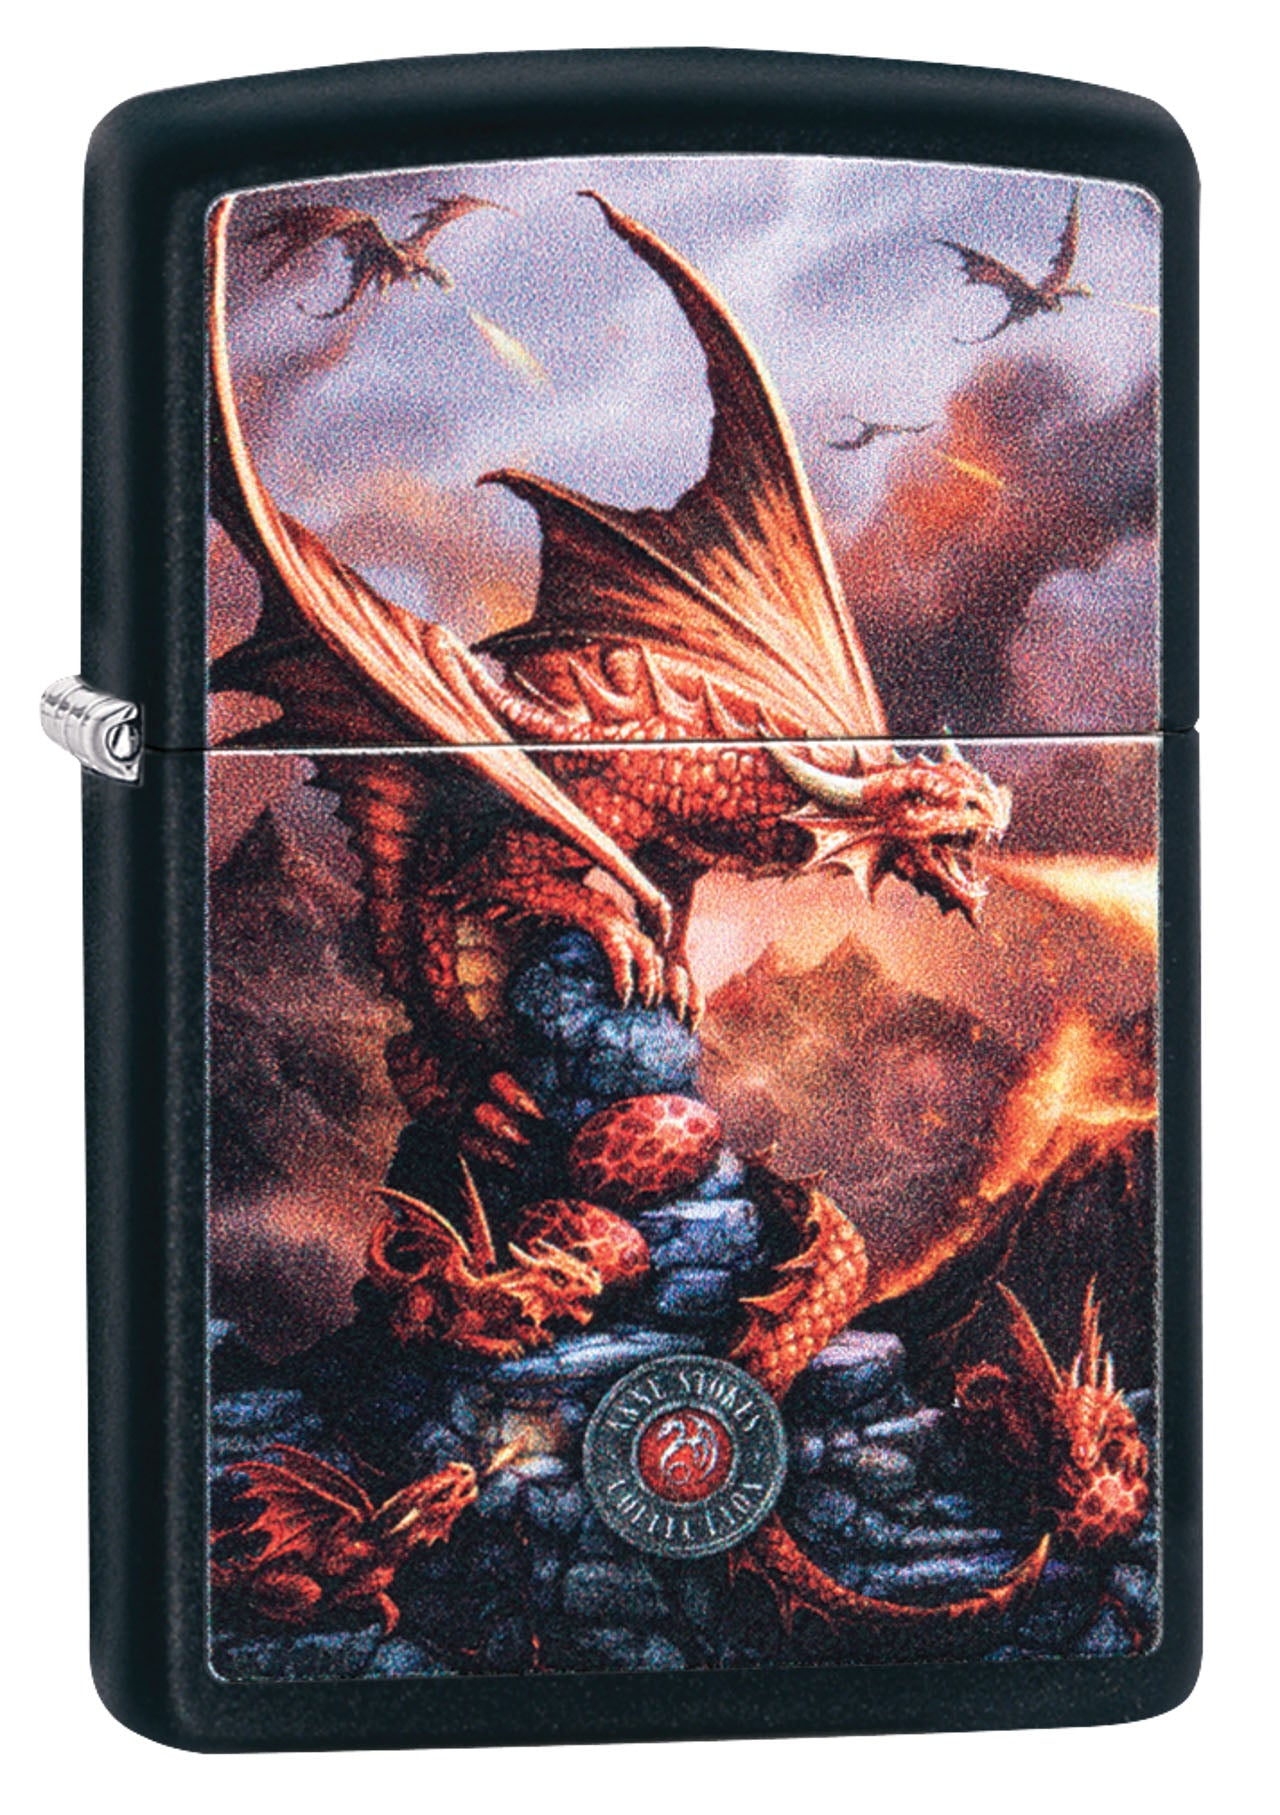 Zippo Lighter: Anne Stokes Fire Breathing Dragon - Black Matte 49097 (4555555242077)